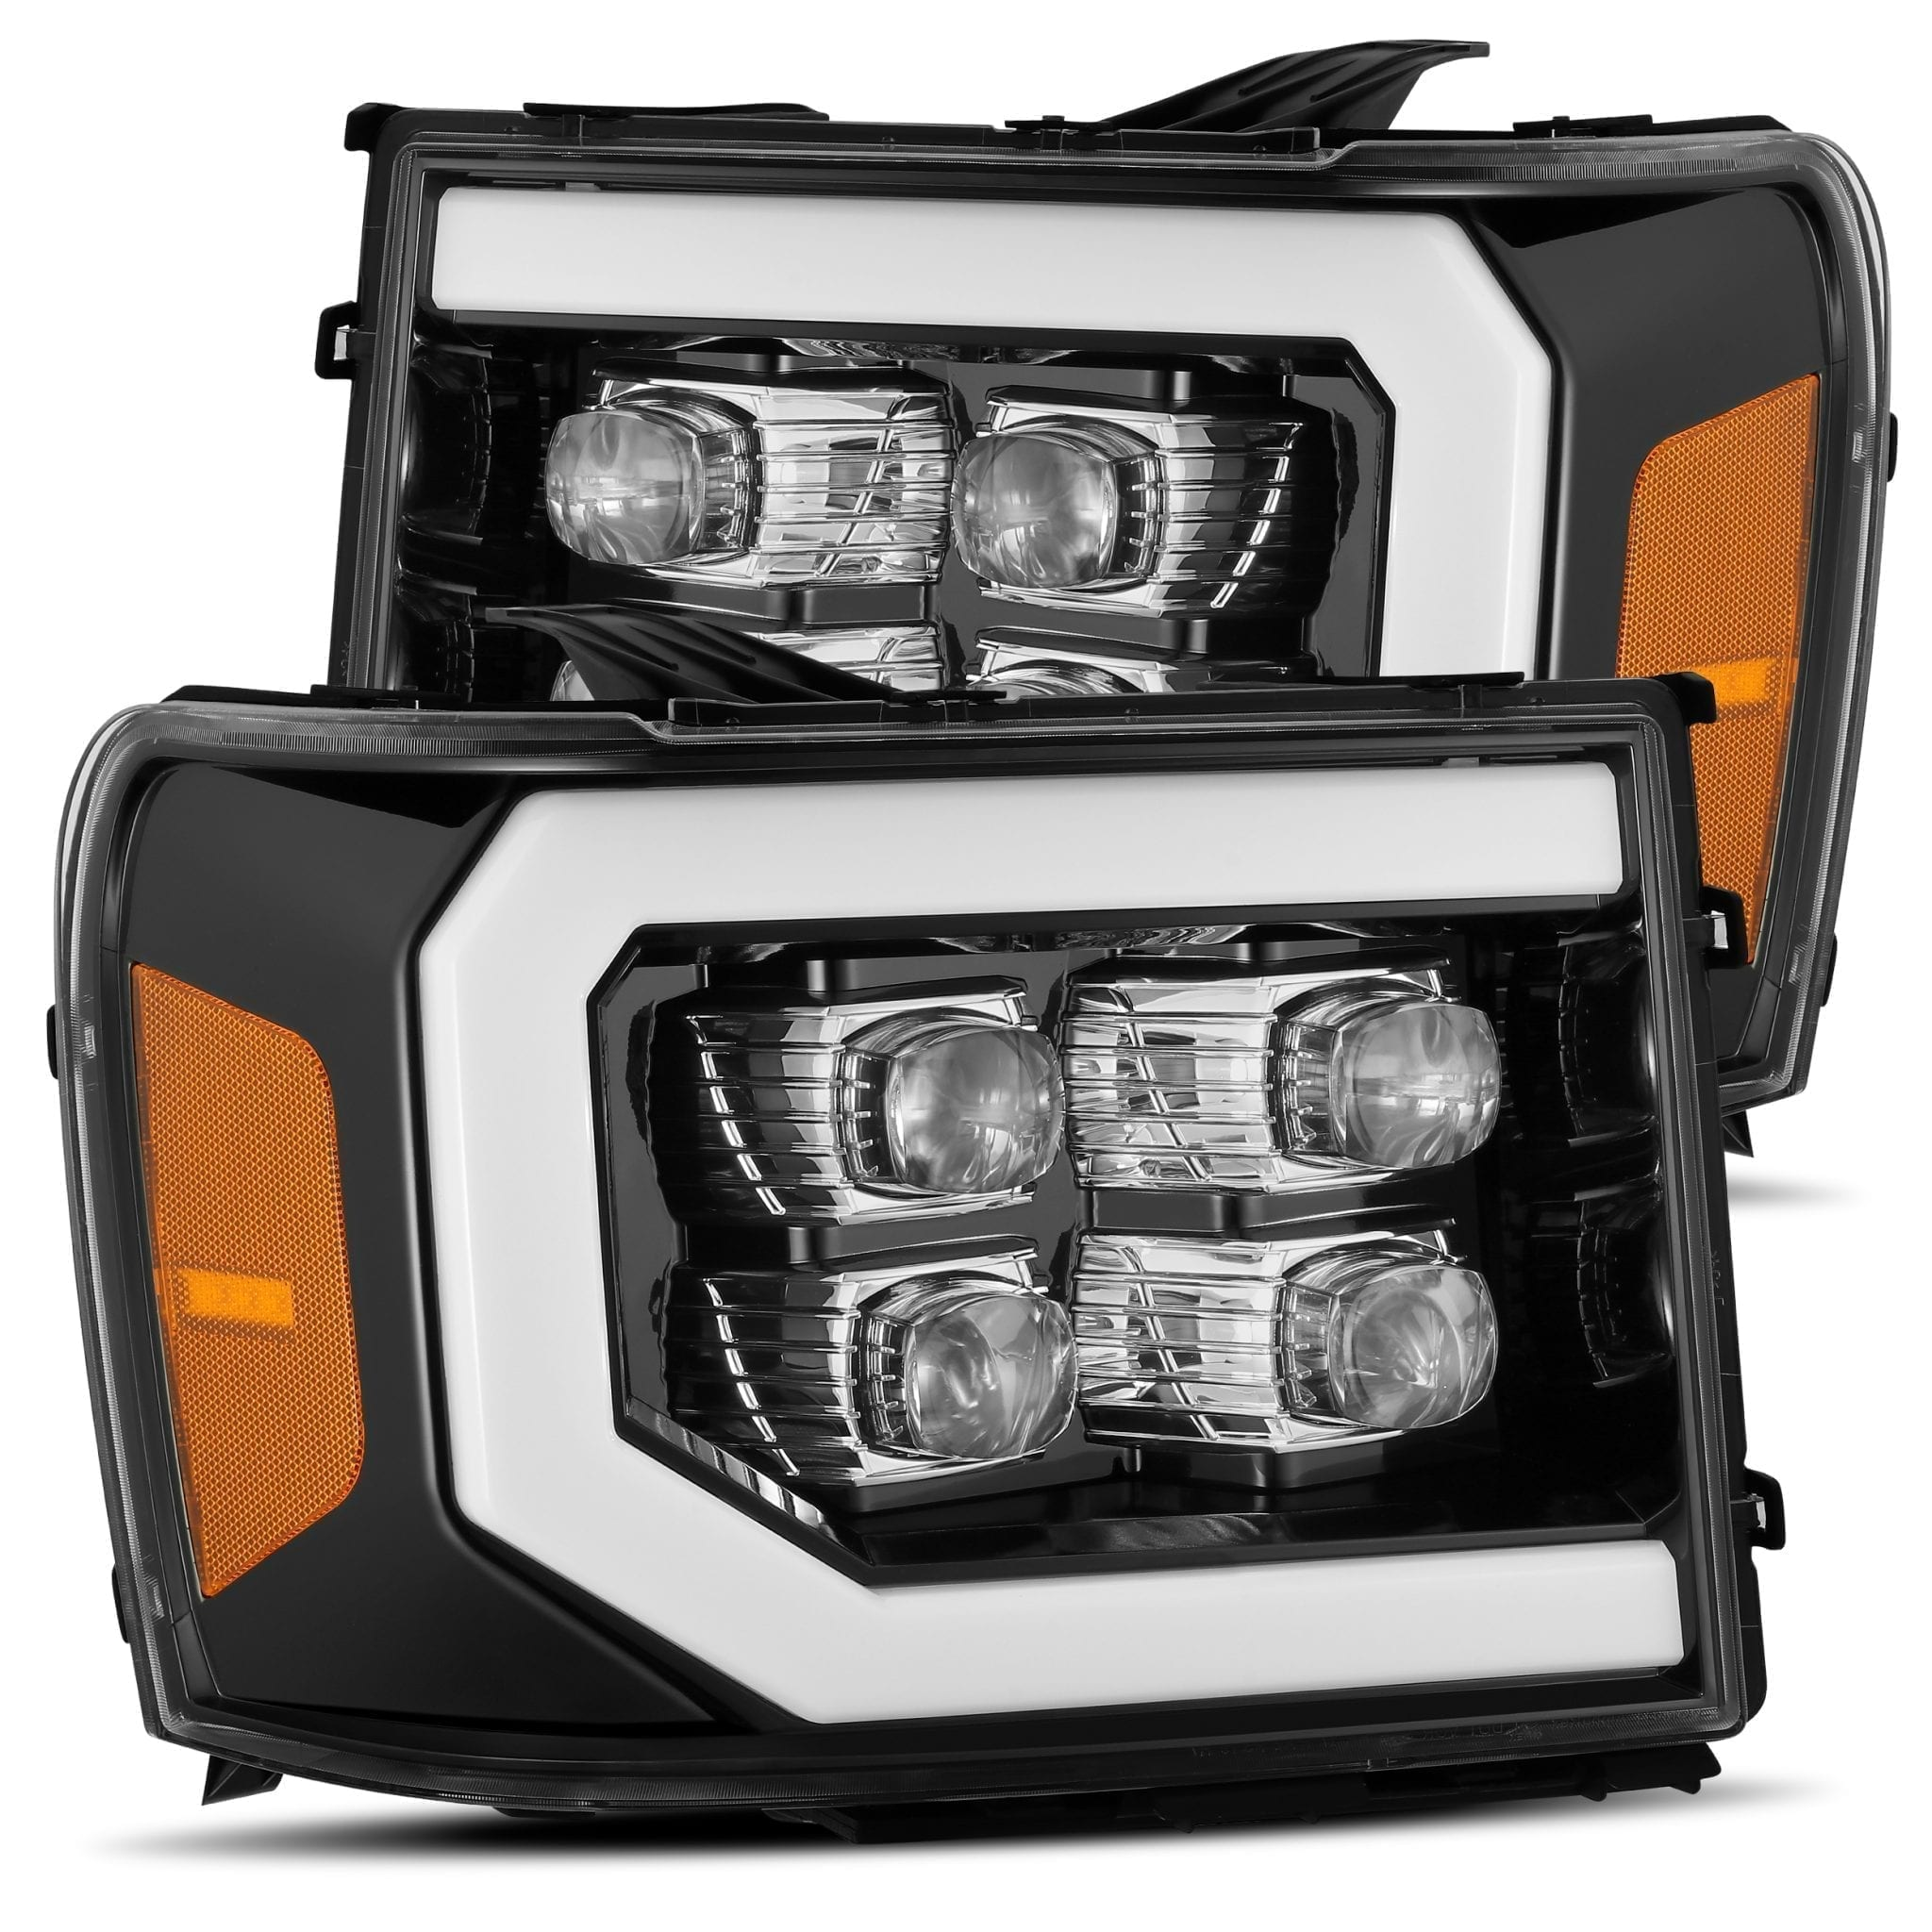 2007 2008 2009 2010 2011 2012 2013 GMC Sierra NOVA-Series Full LED Projector Headlights Jet Black